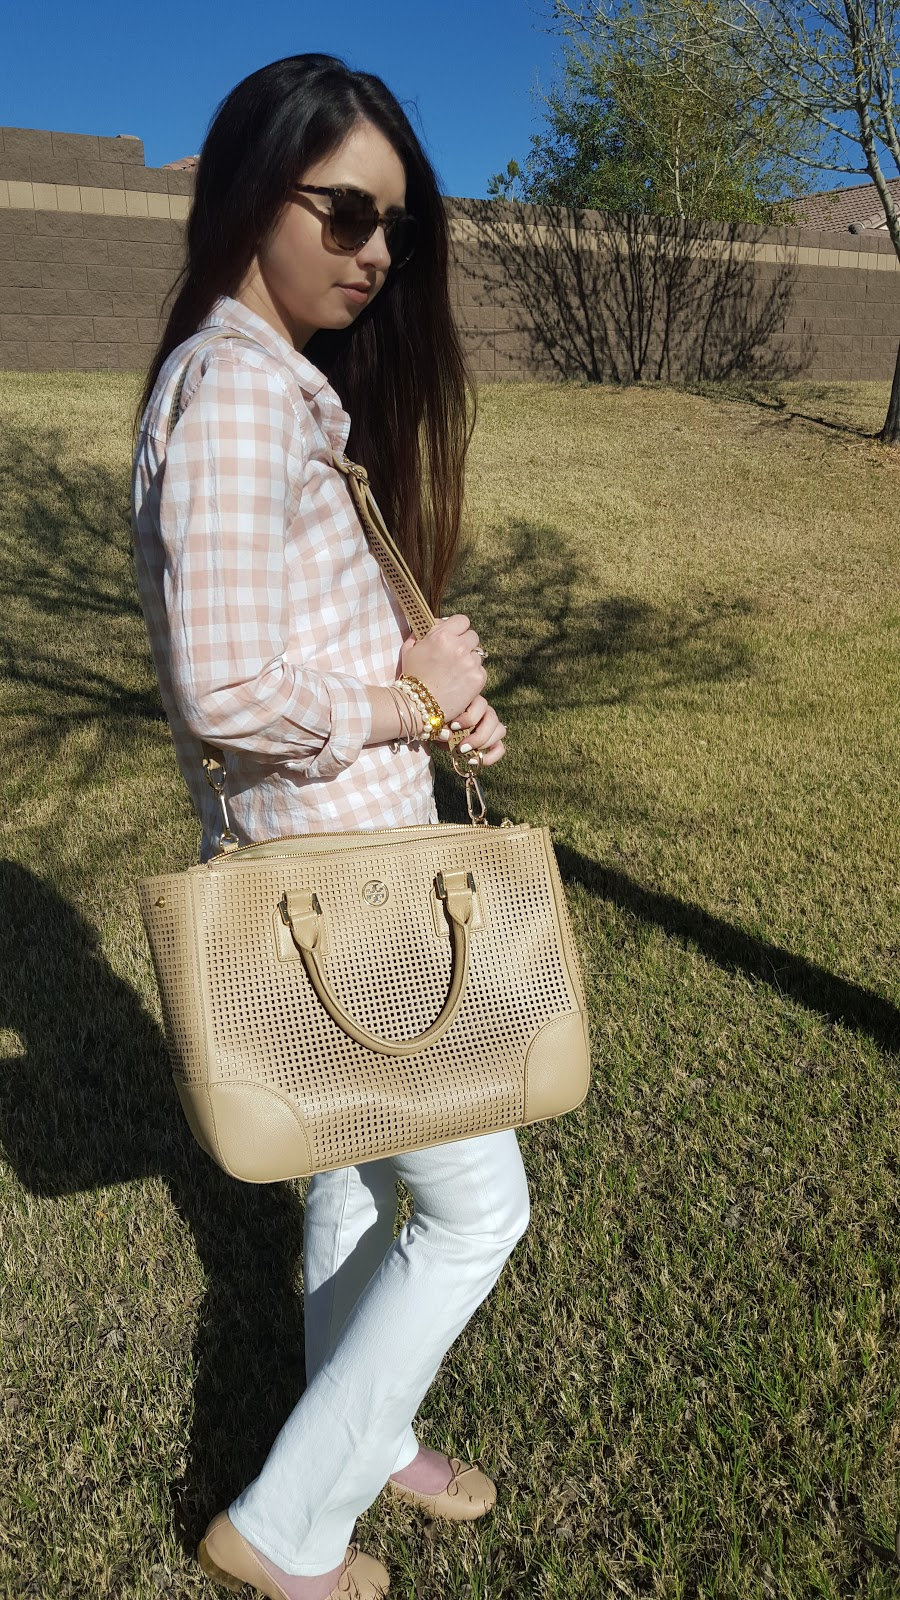 Tory Burch Robinson tote with gingham and white jeans